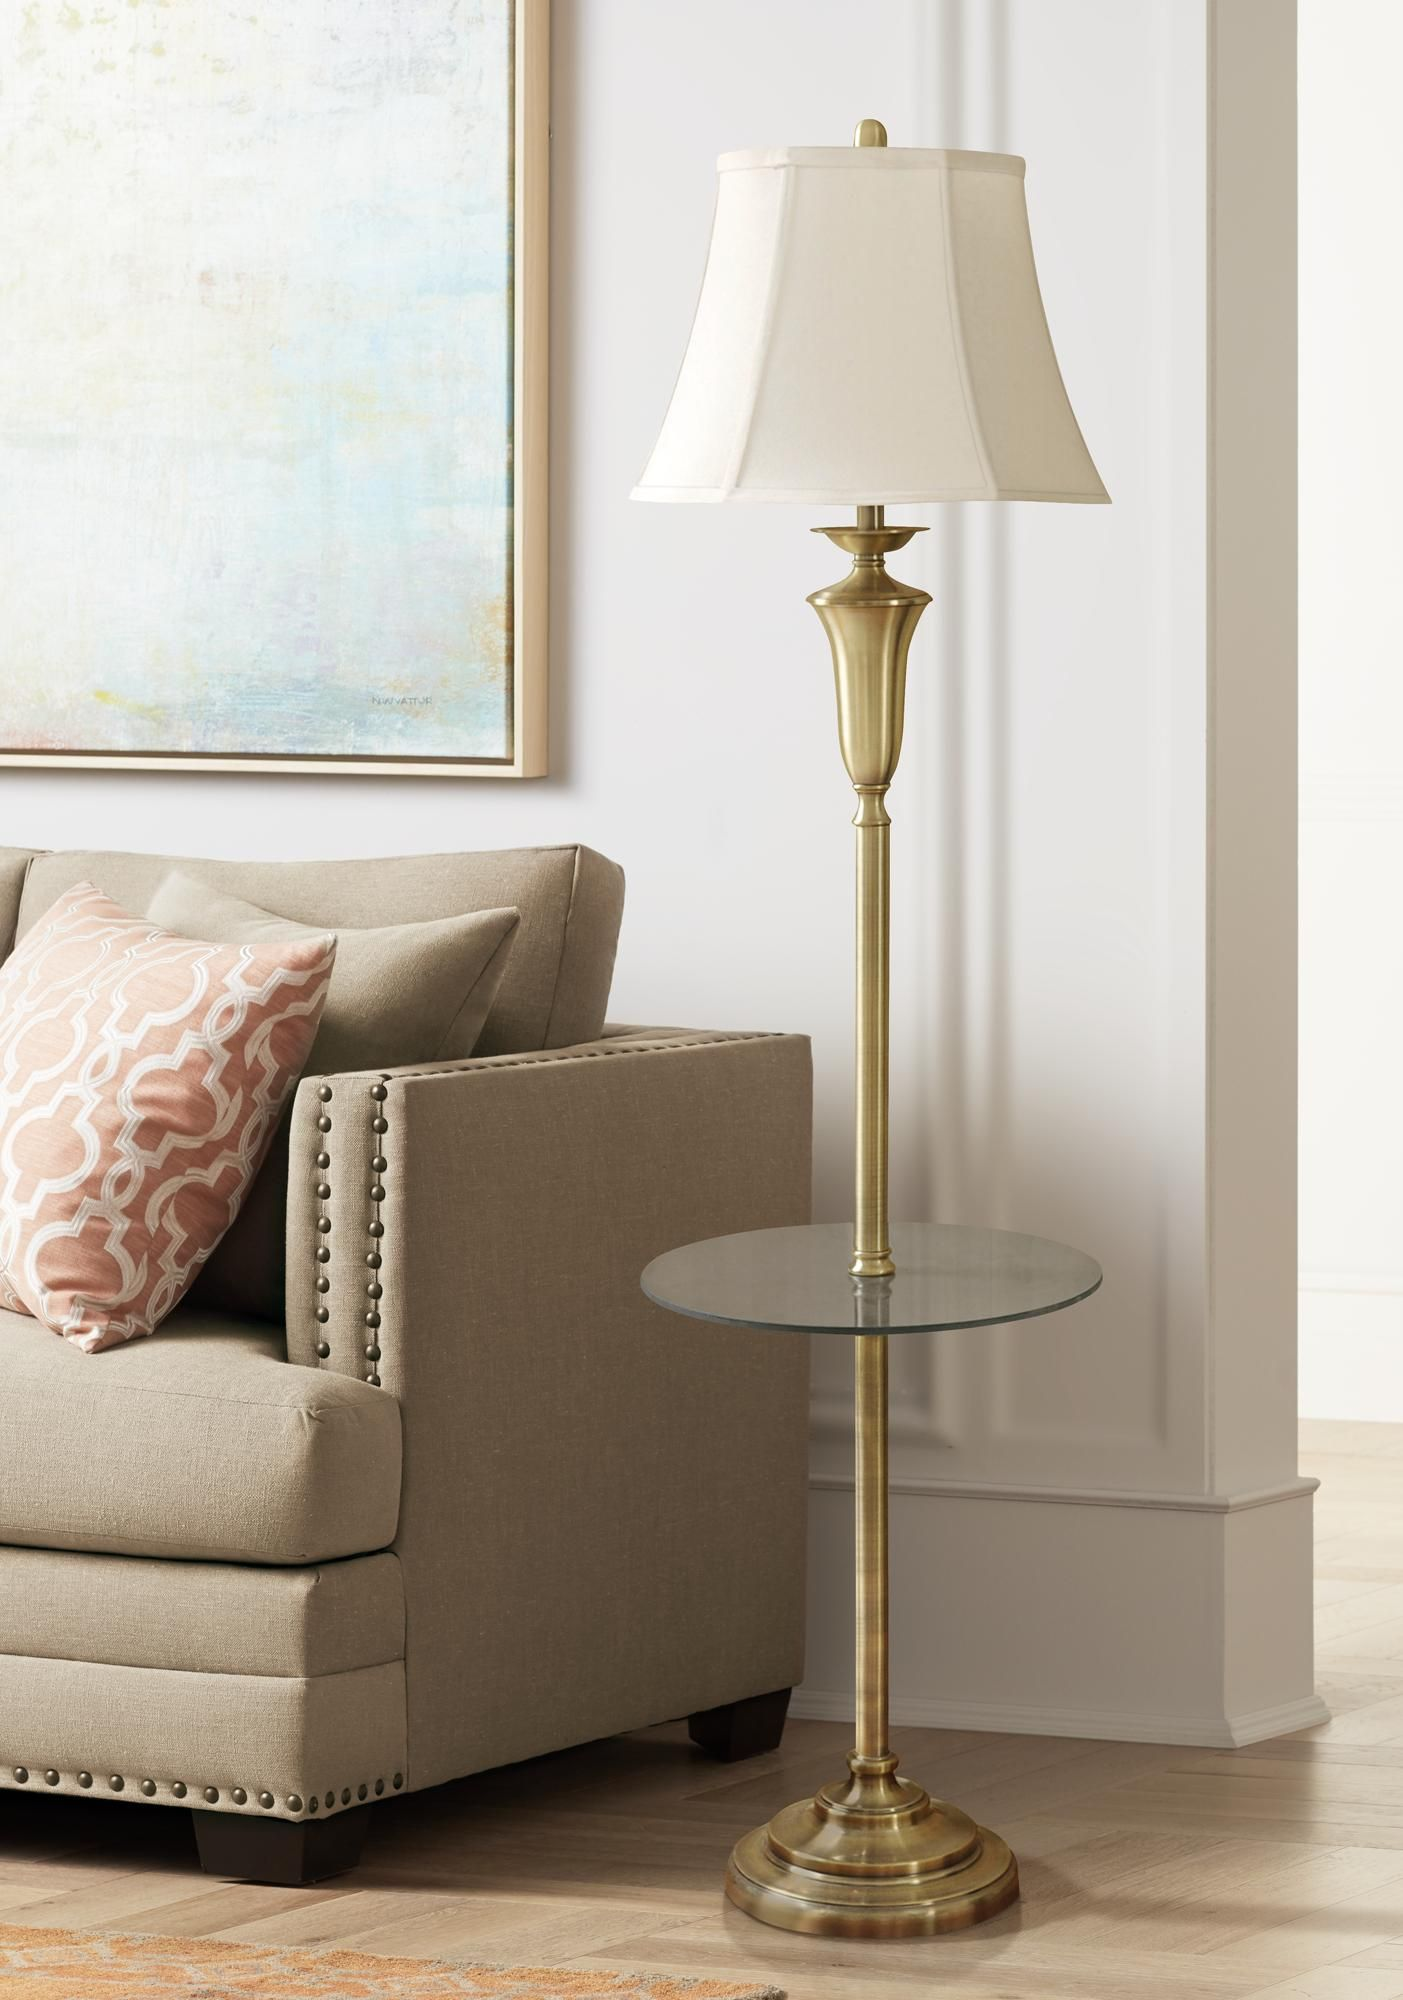 Floor Lamps Staicey Brushed Brass Tray Table Floor Lamp Floor Lamp Table Brass Tray Table Floor Lamp